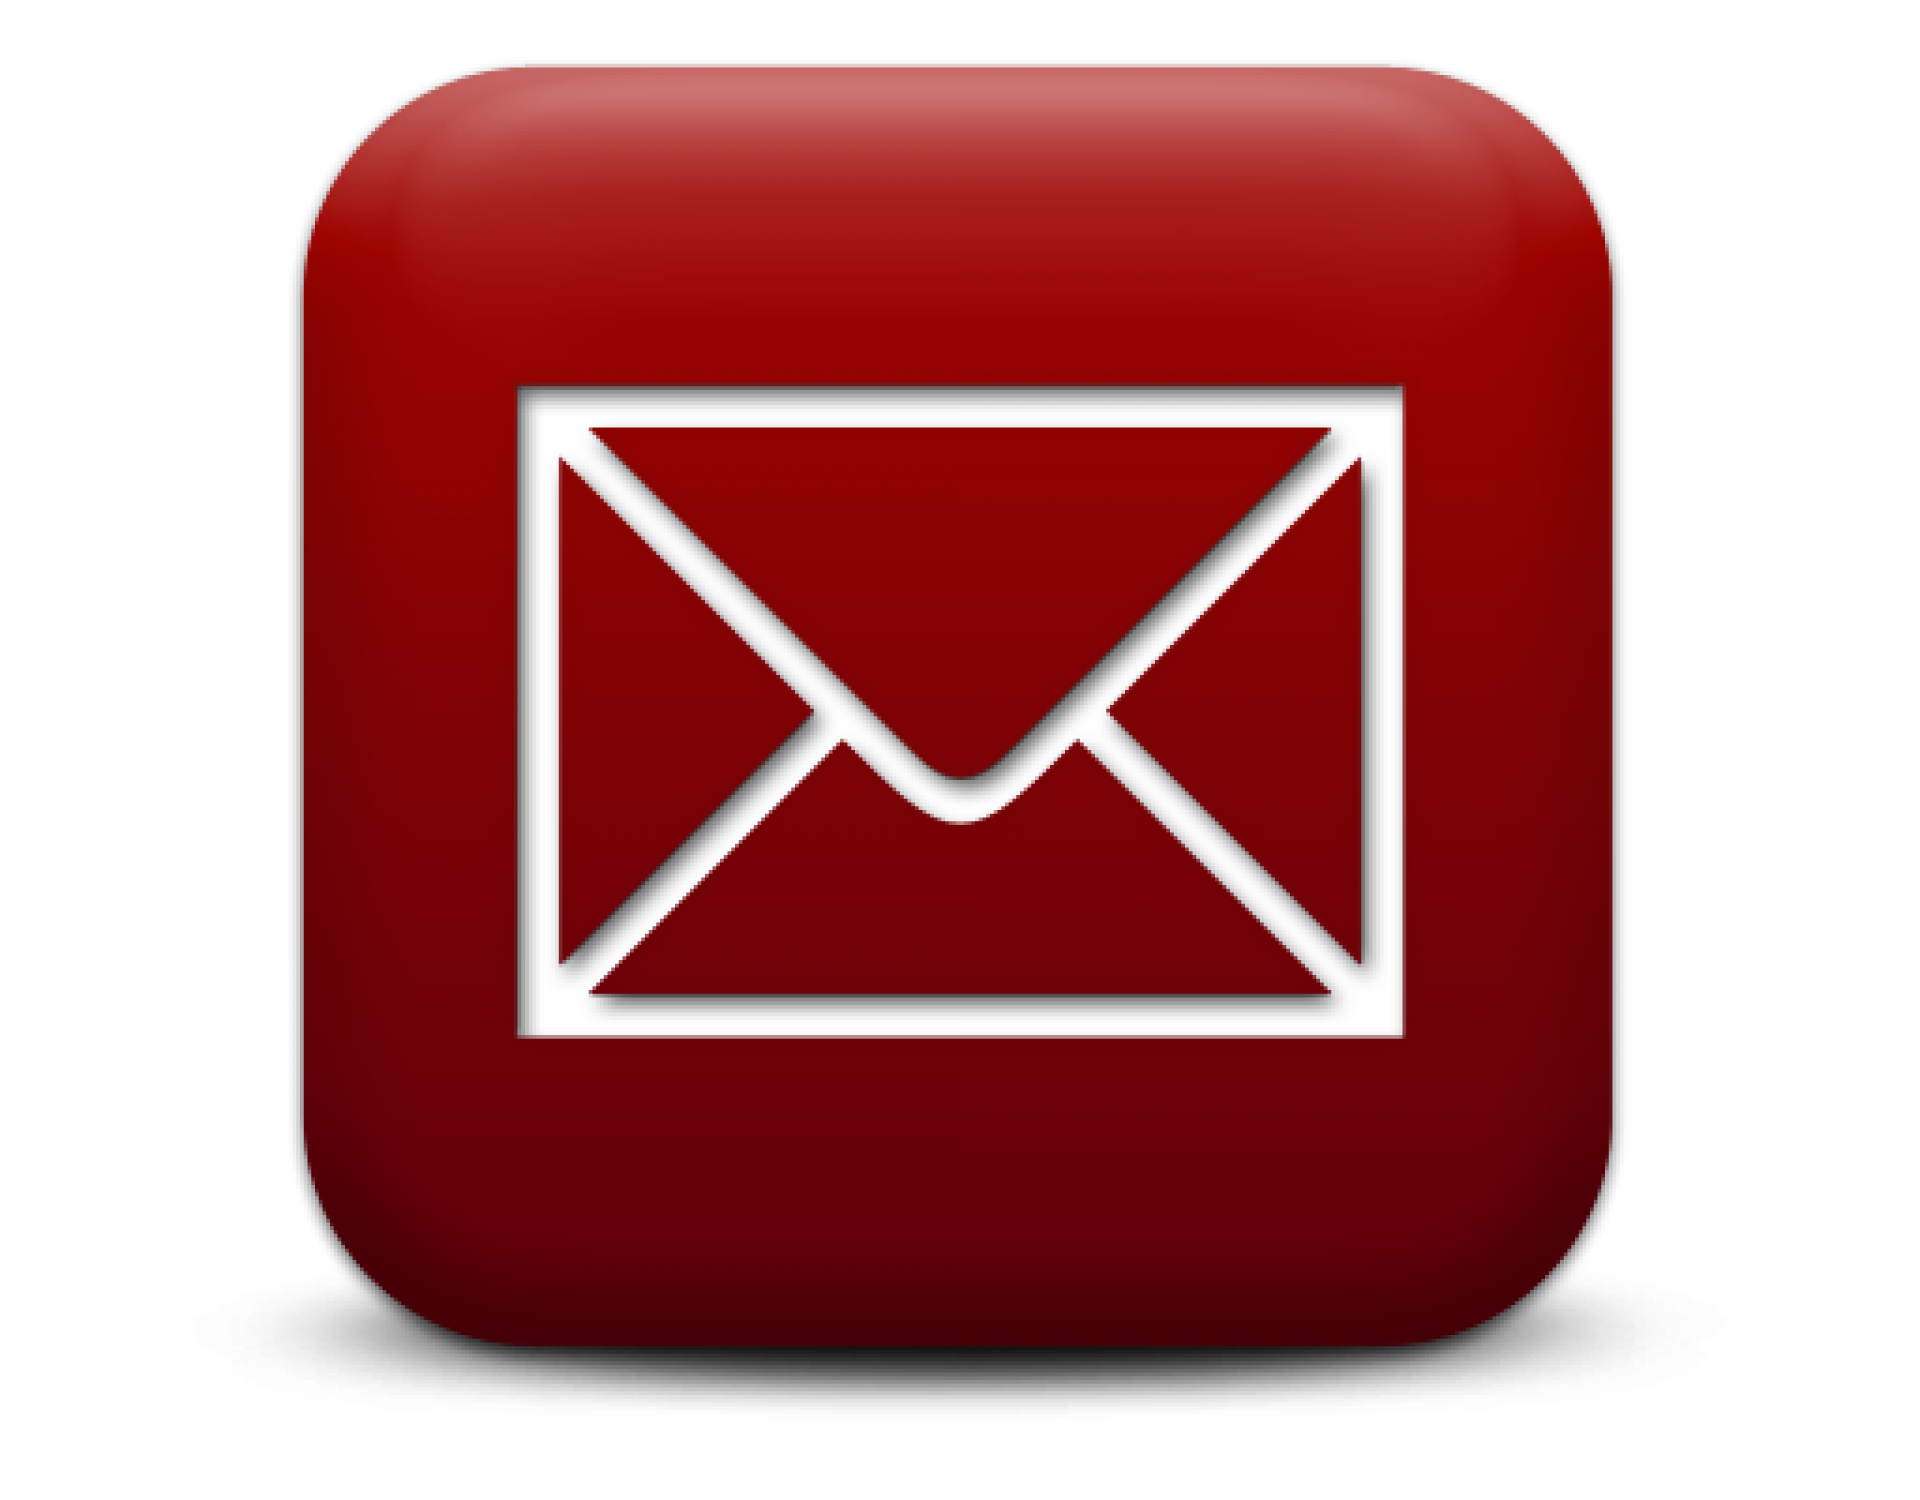 email logo png 1127